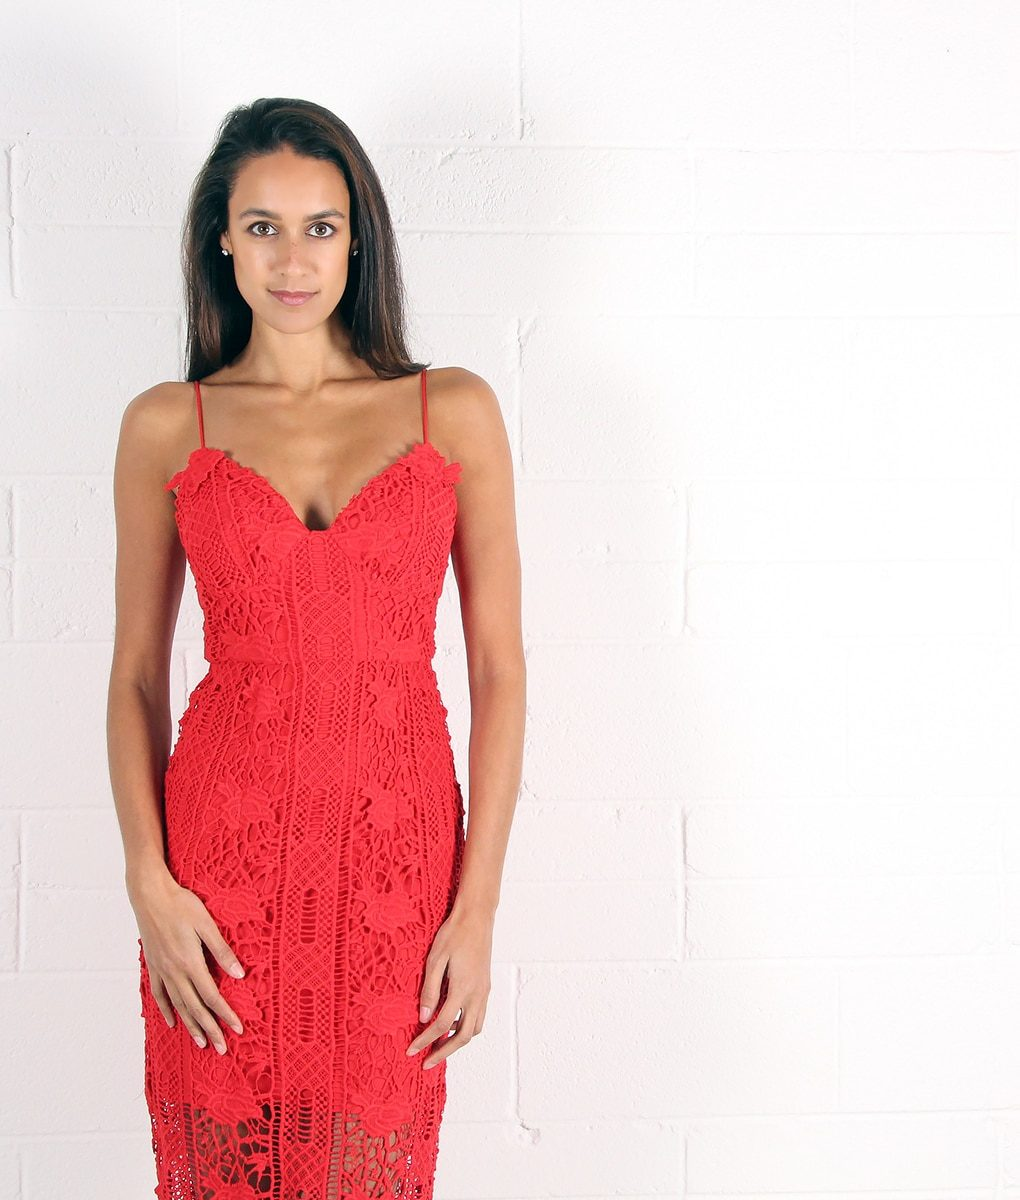 alila-red-crochet-dress-for-wedding-by-lumier-by-bariano-crop